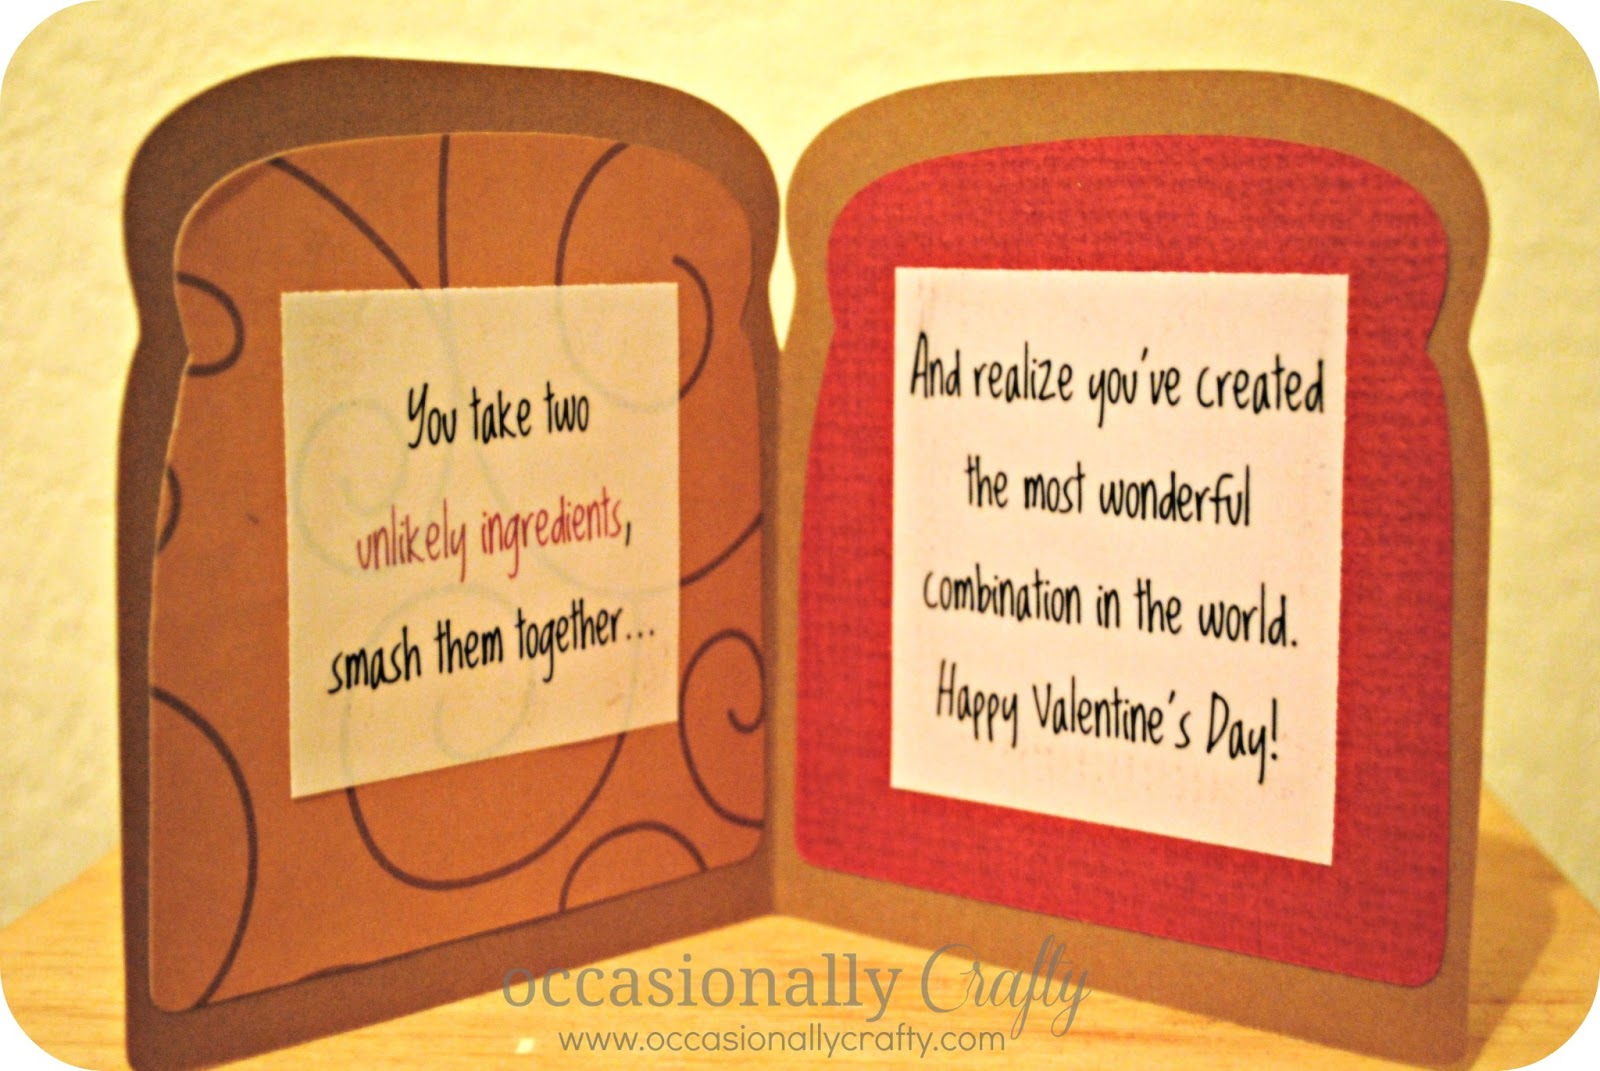 Happy Valentines Day A Card For My Husband Occasionally Crafty